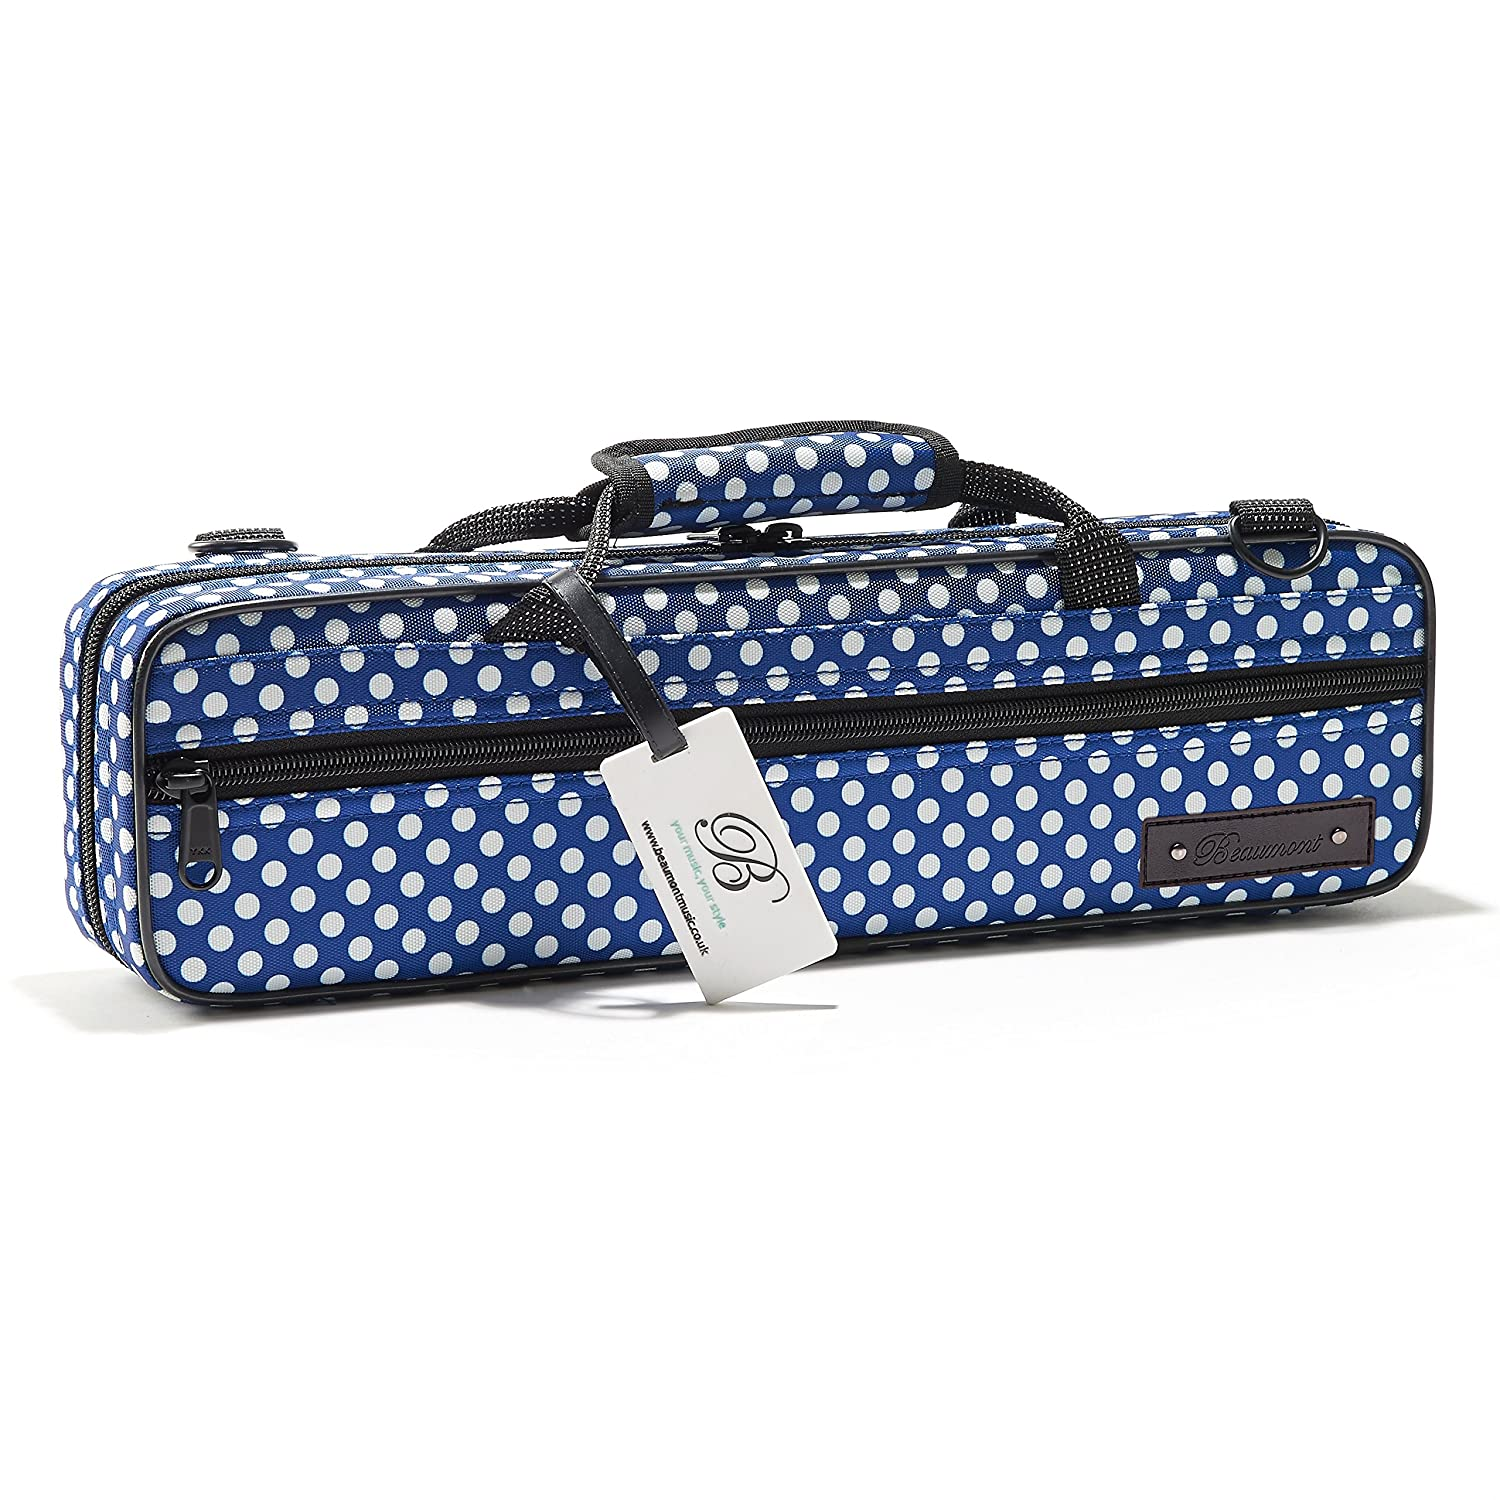 Beaumont BFCA-BP Blue Polka Dot Flute Box Case